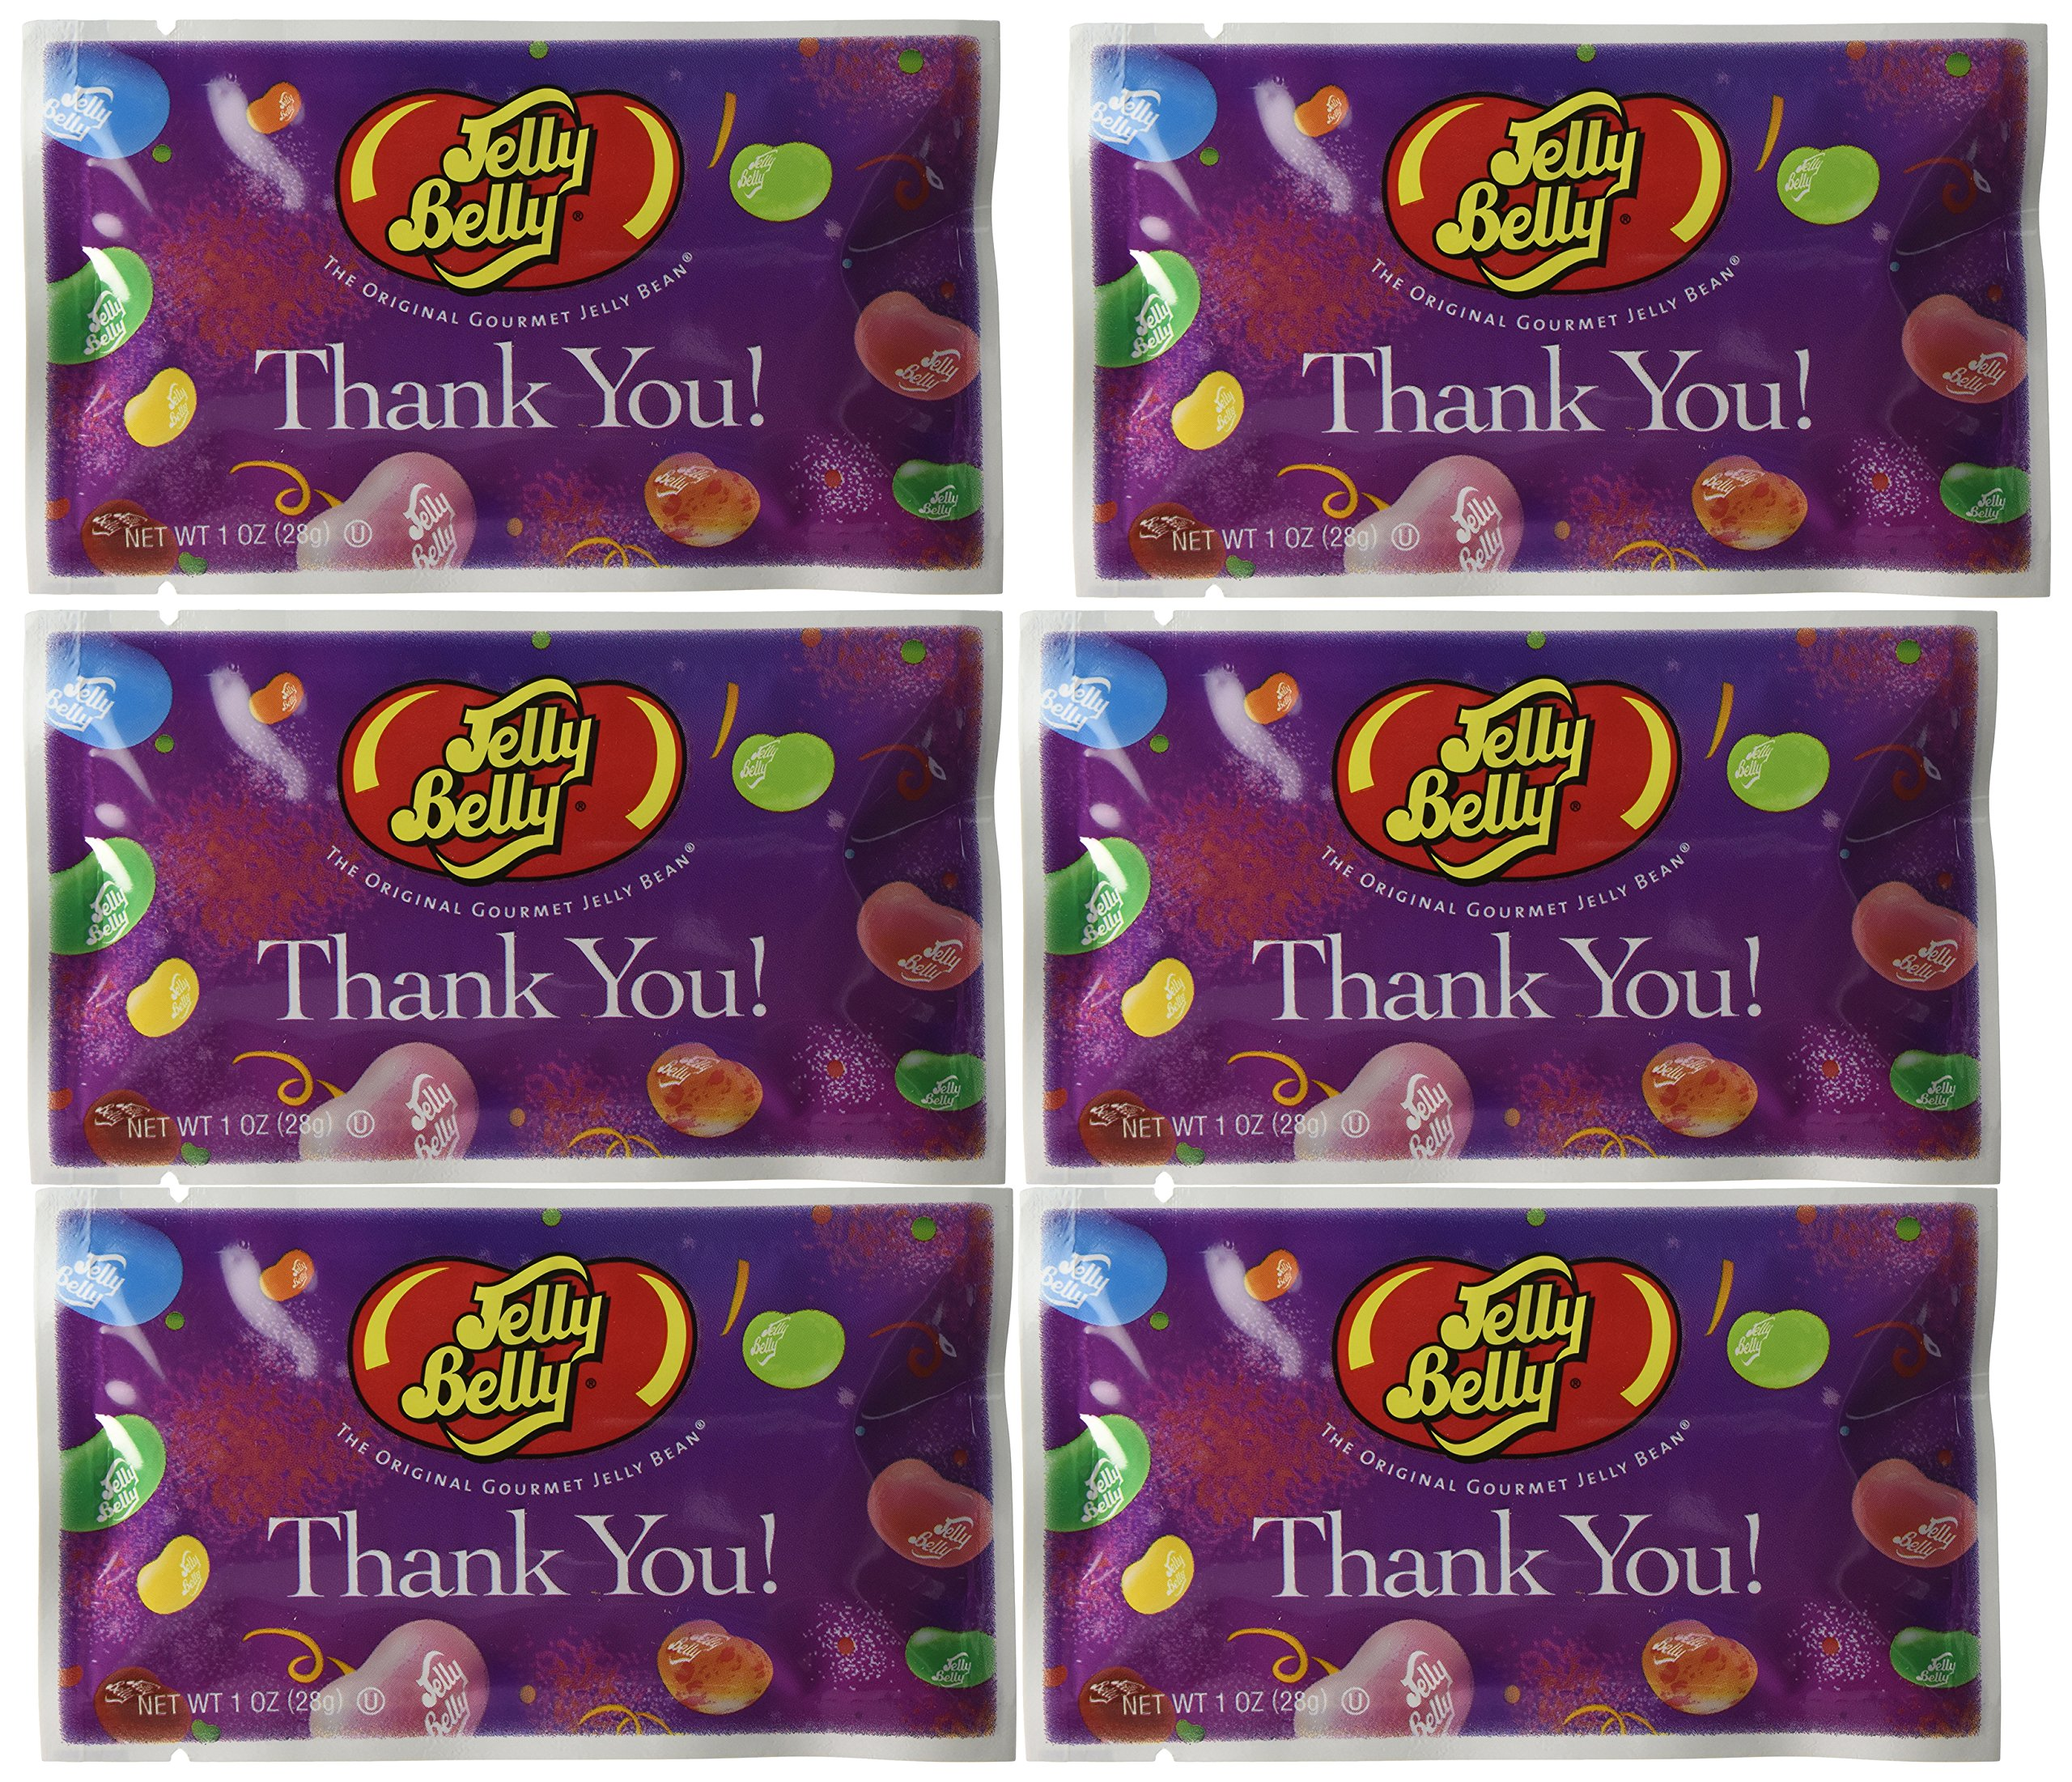 Thank You Assorted Flavors Jelly Beans - 1 oz. Bag - 30-Count Case